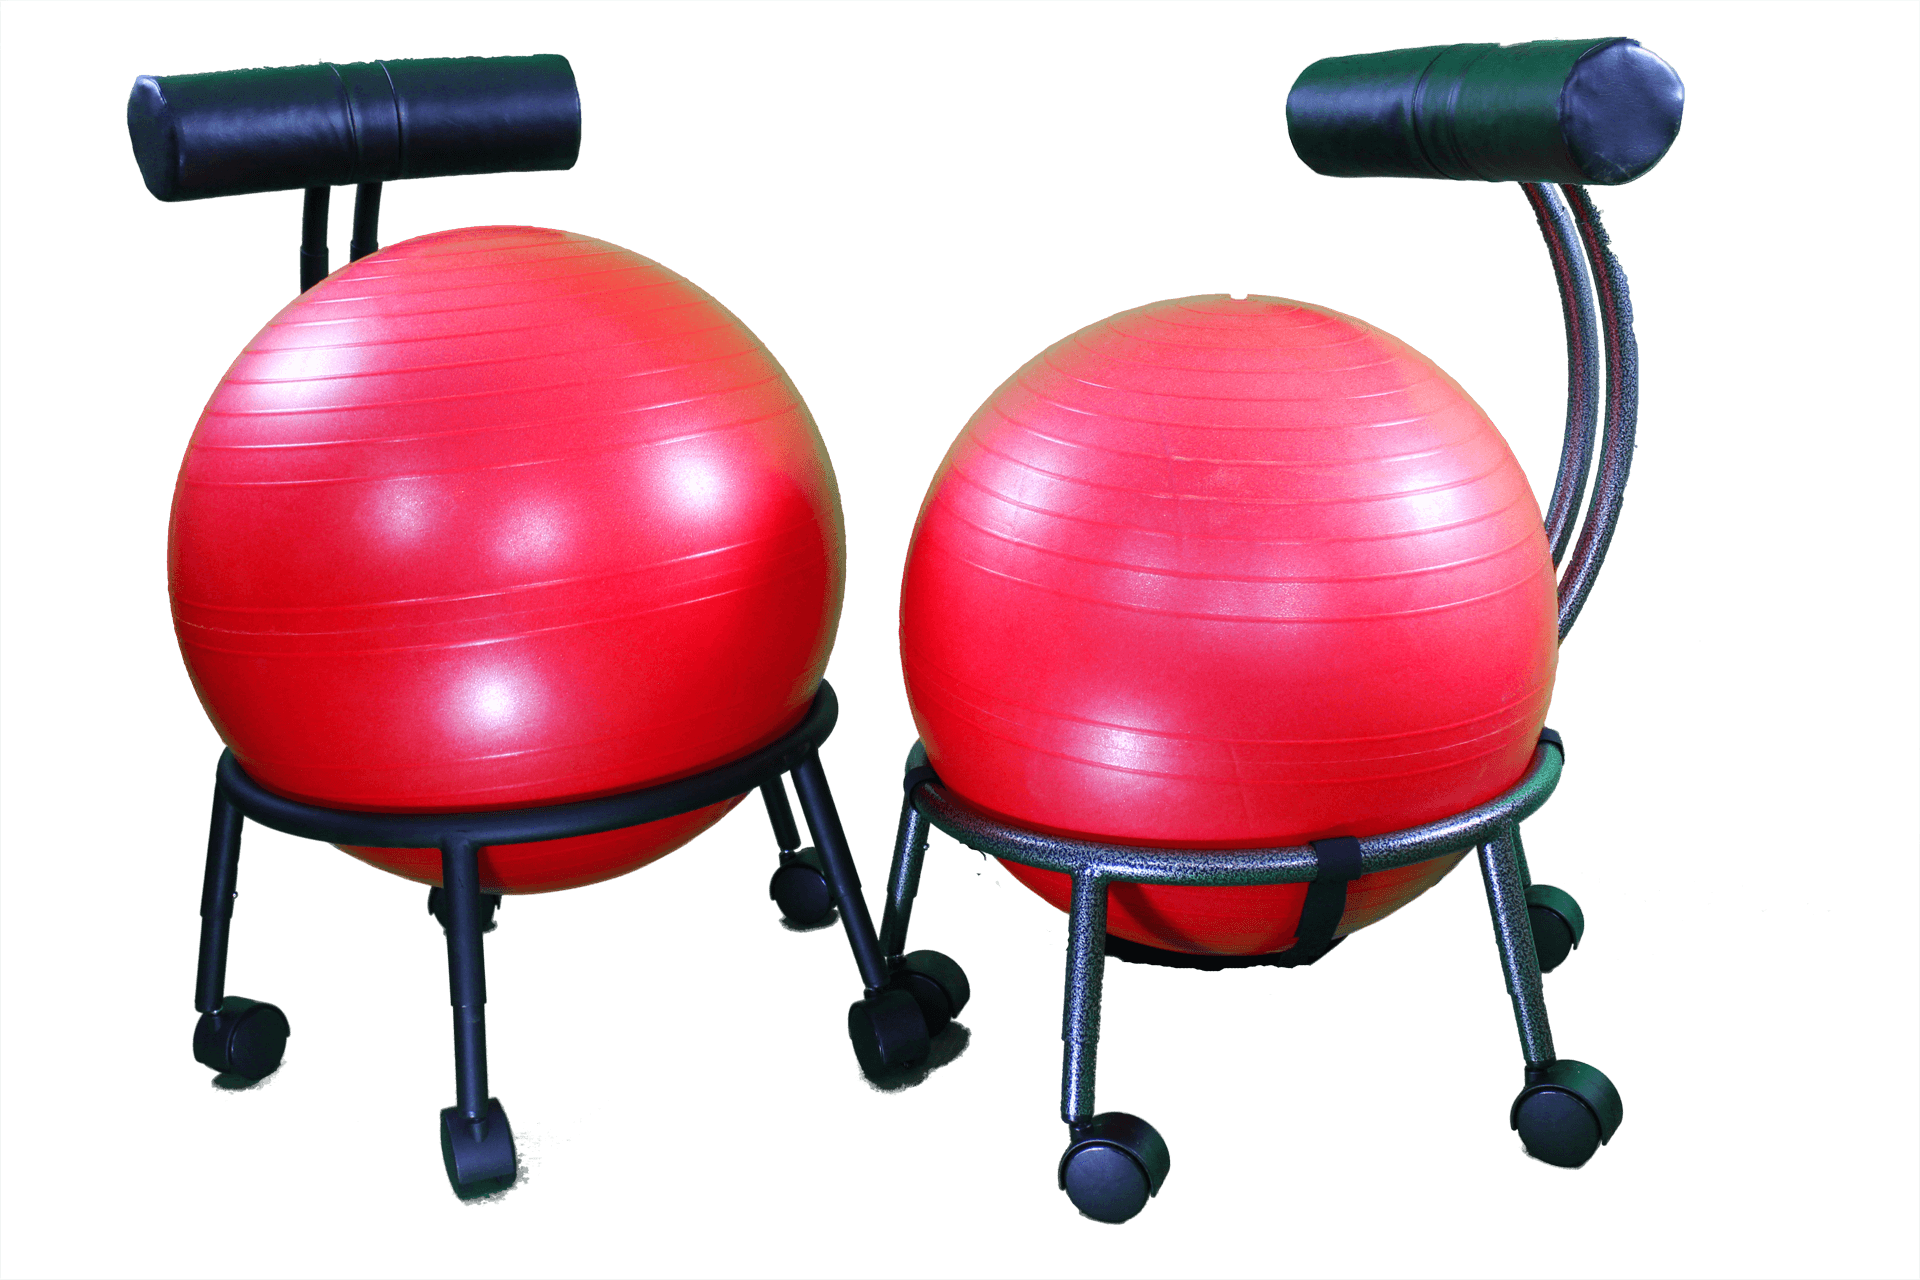 Therapeutic Ball Seat Helps Build a Healthier Back Align the